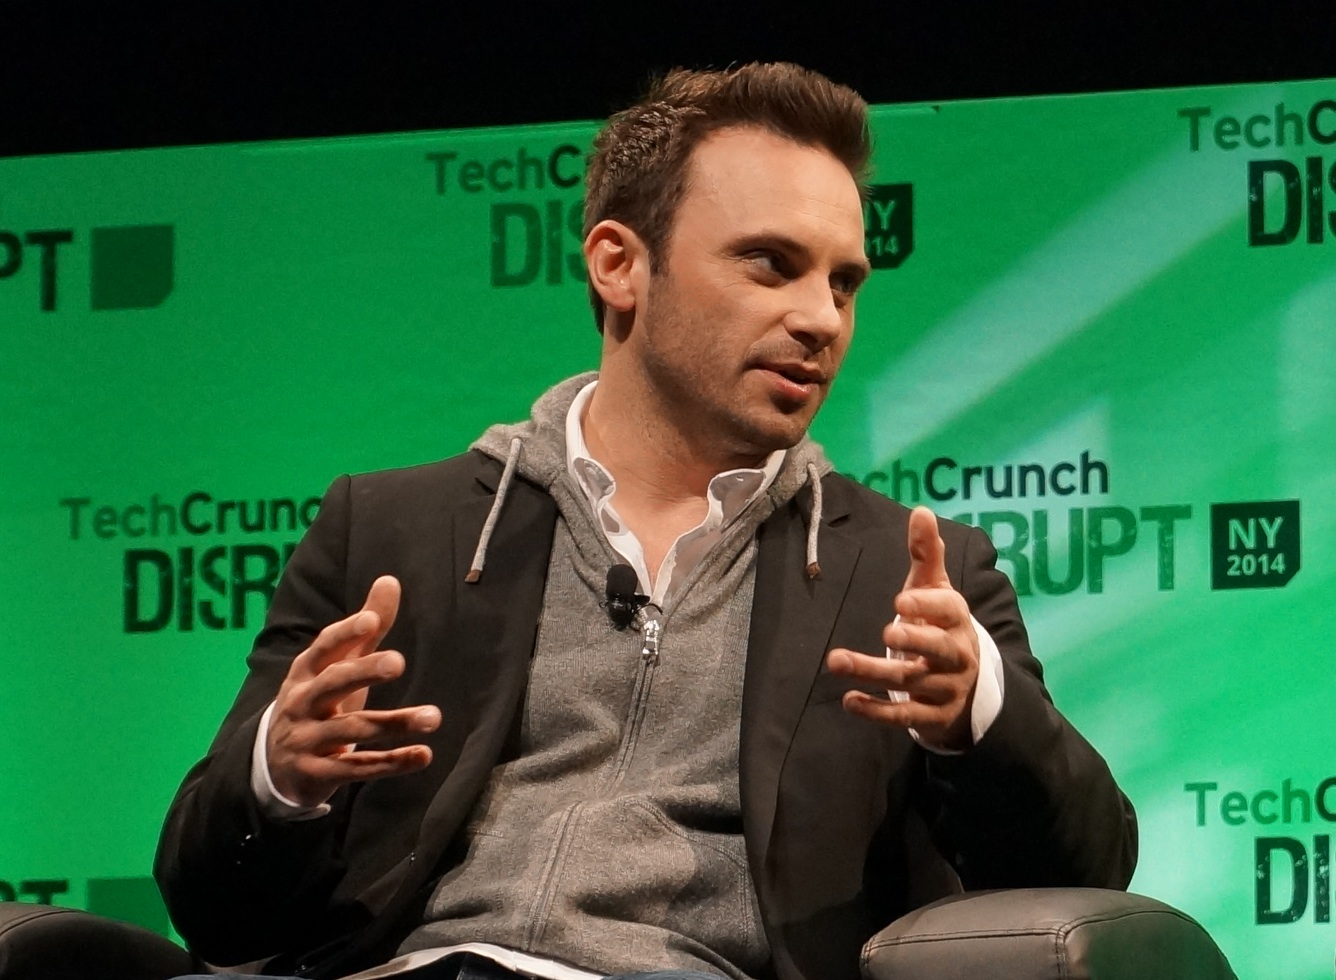 oculus-ceo-brendan-iribe-techcrunch-disrupt-thumb.jpg